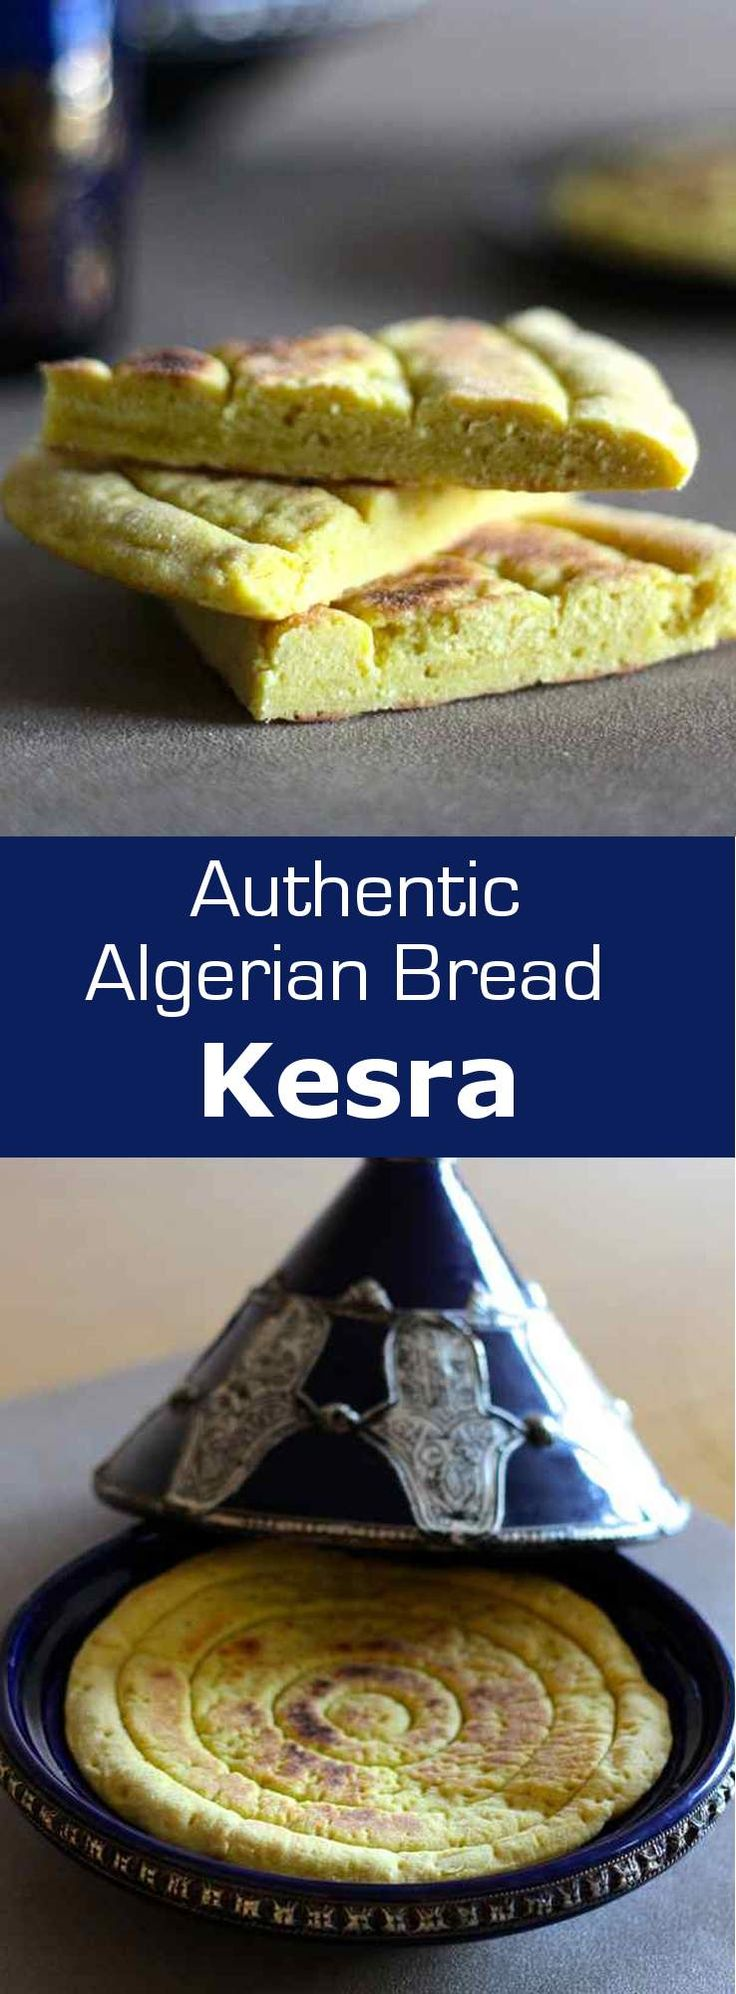 Kesra bread is a traditional flatbread made from Algerian semolina served both in savory and sweet meals. #vegan #vegetarian #bread #algeria #maghreb #northafrica. #196flavors